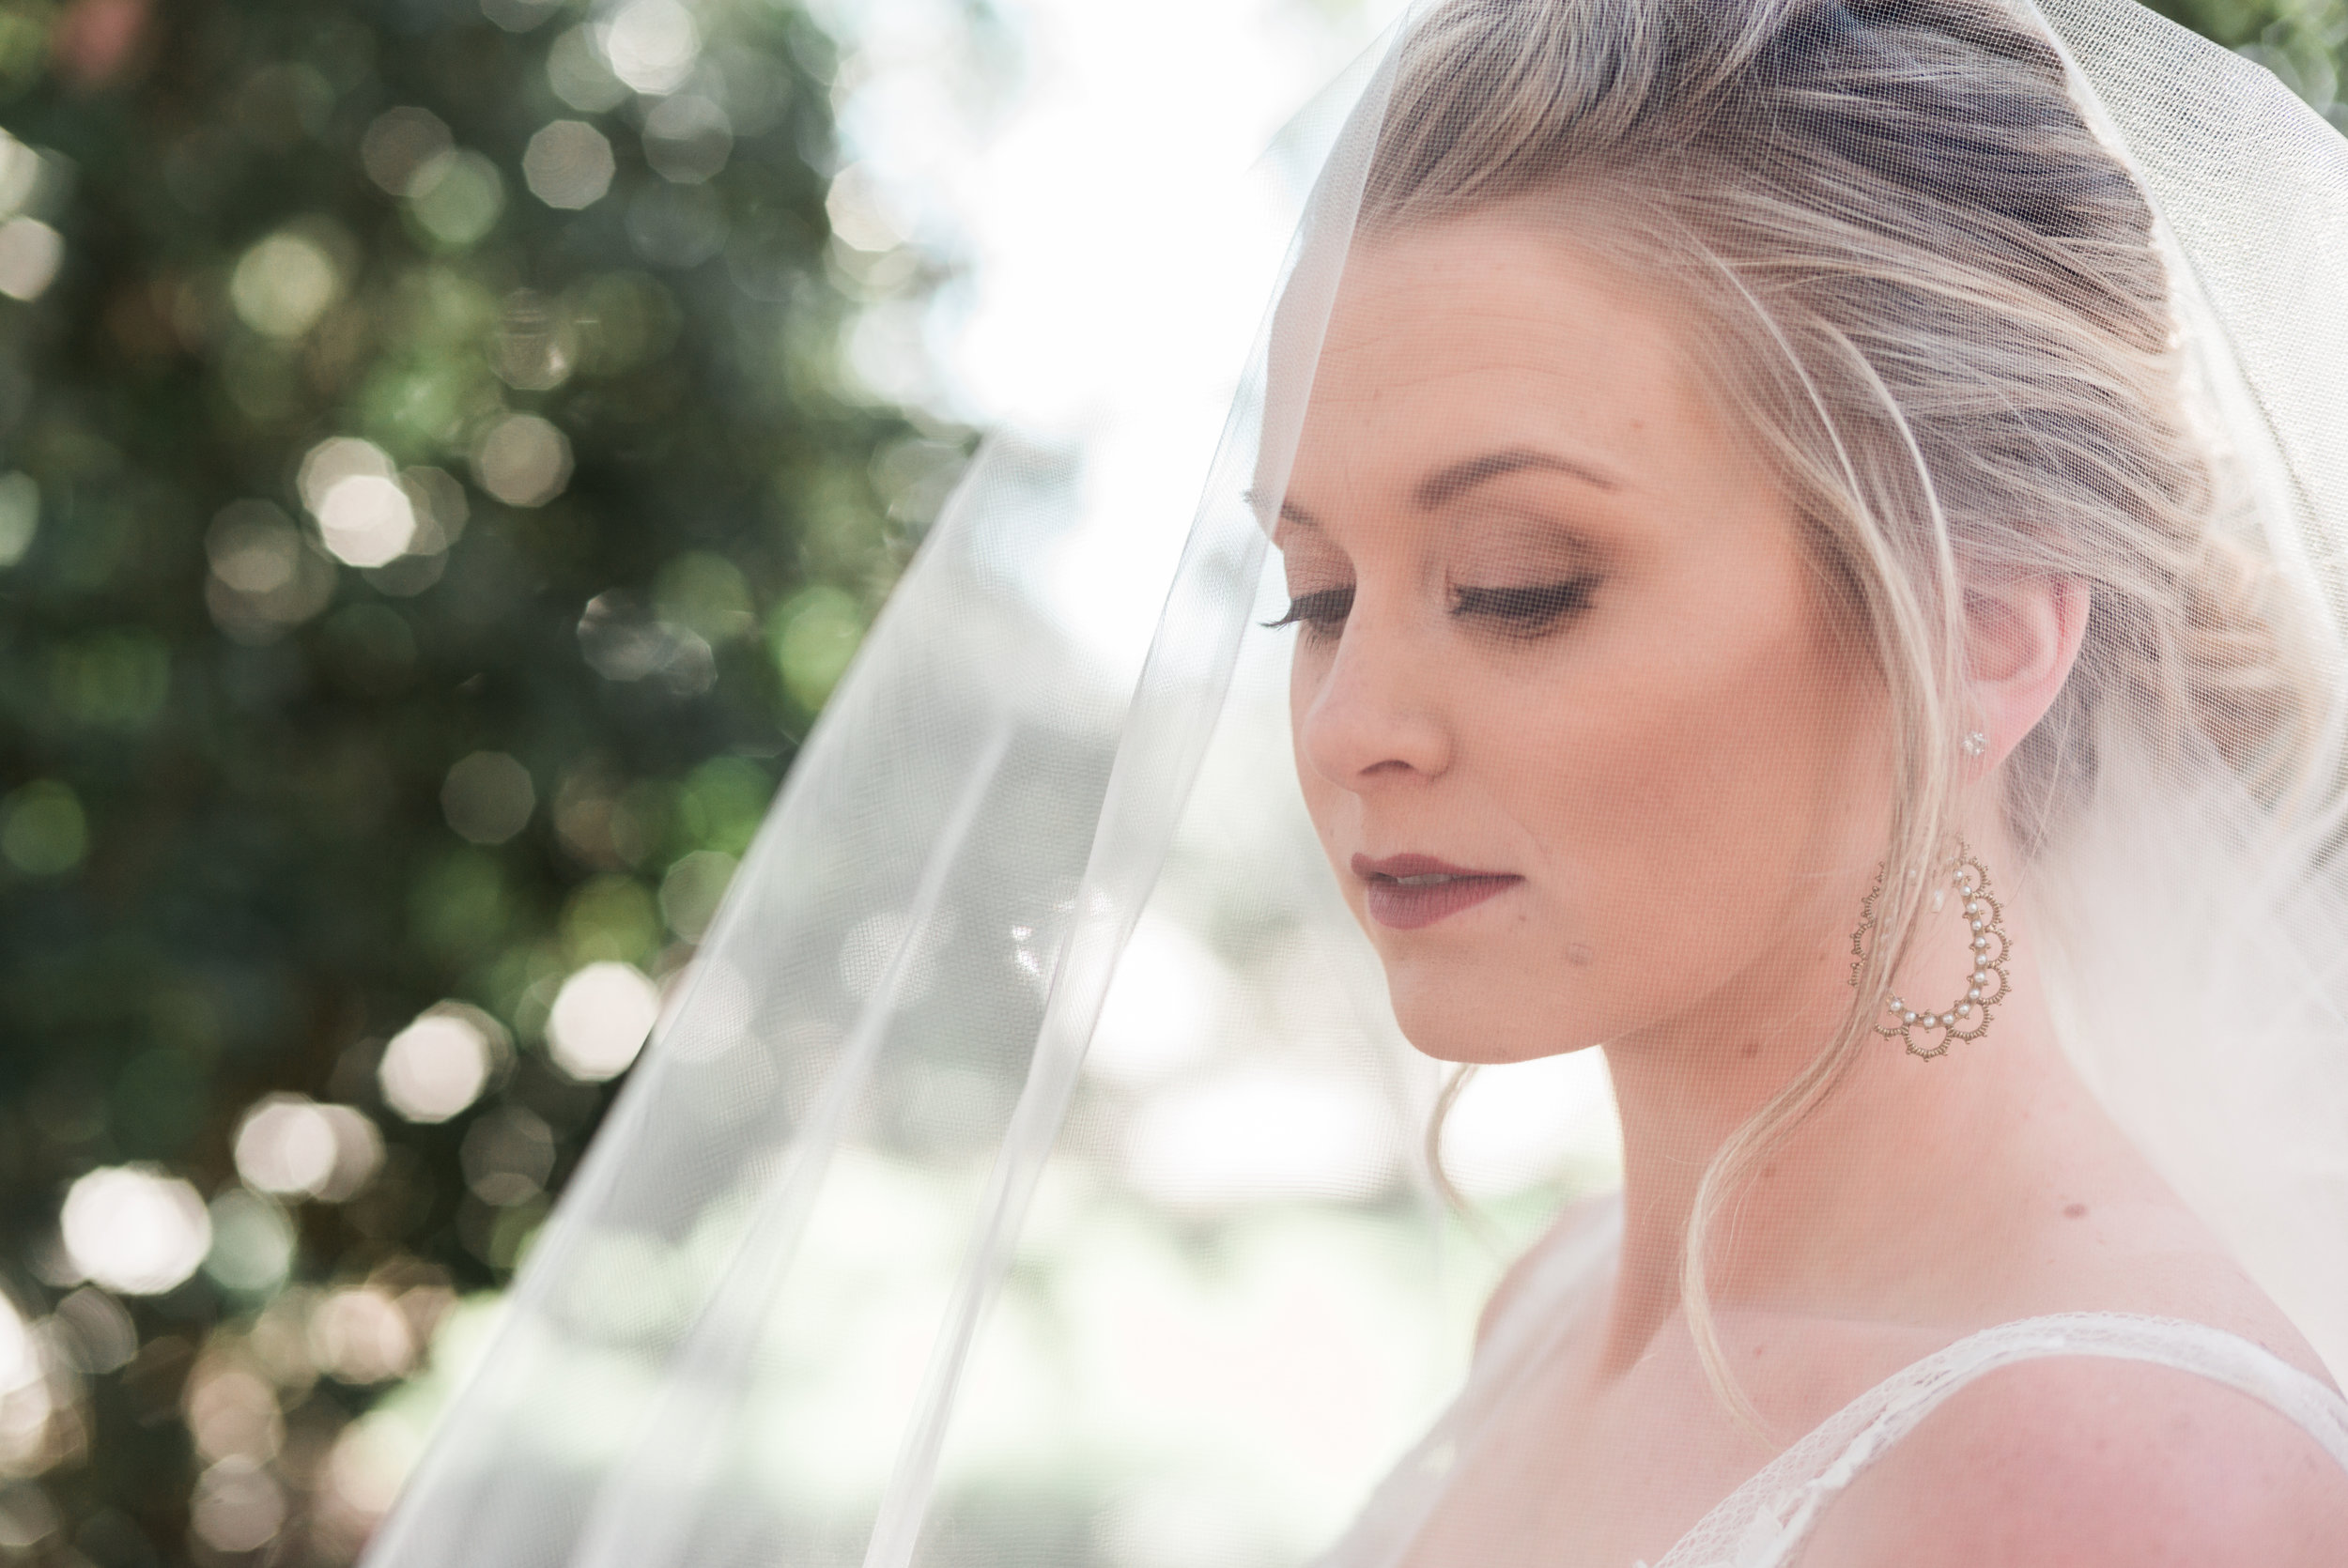 ivory-and-beau-bridal-boutique-savannah-bridal-boutique-savannah-wedding-coordinator-savannah-wedding-planner-bud-johnson-photography-jeff-bush-videography-4.jpg